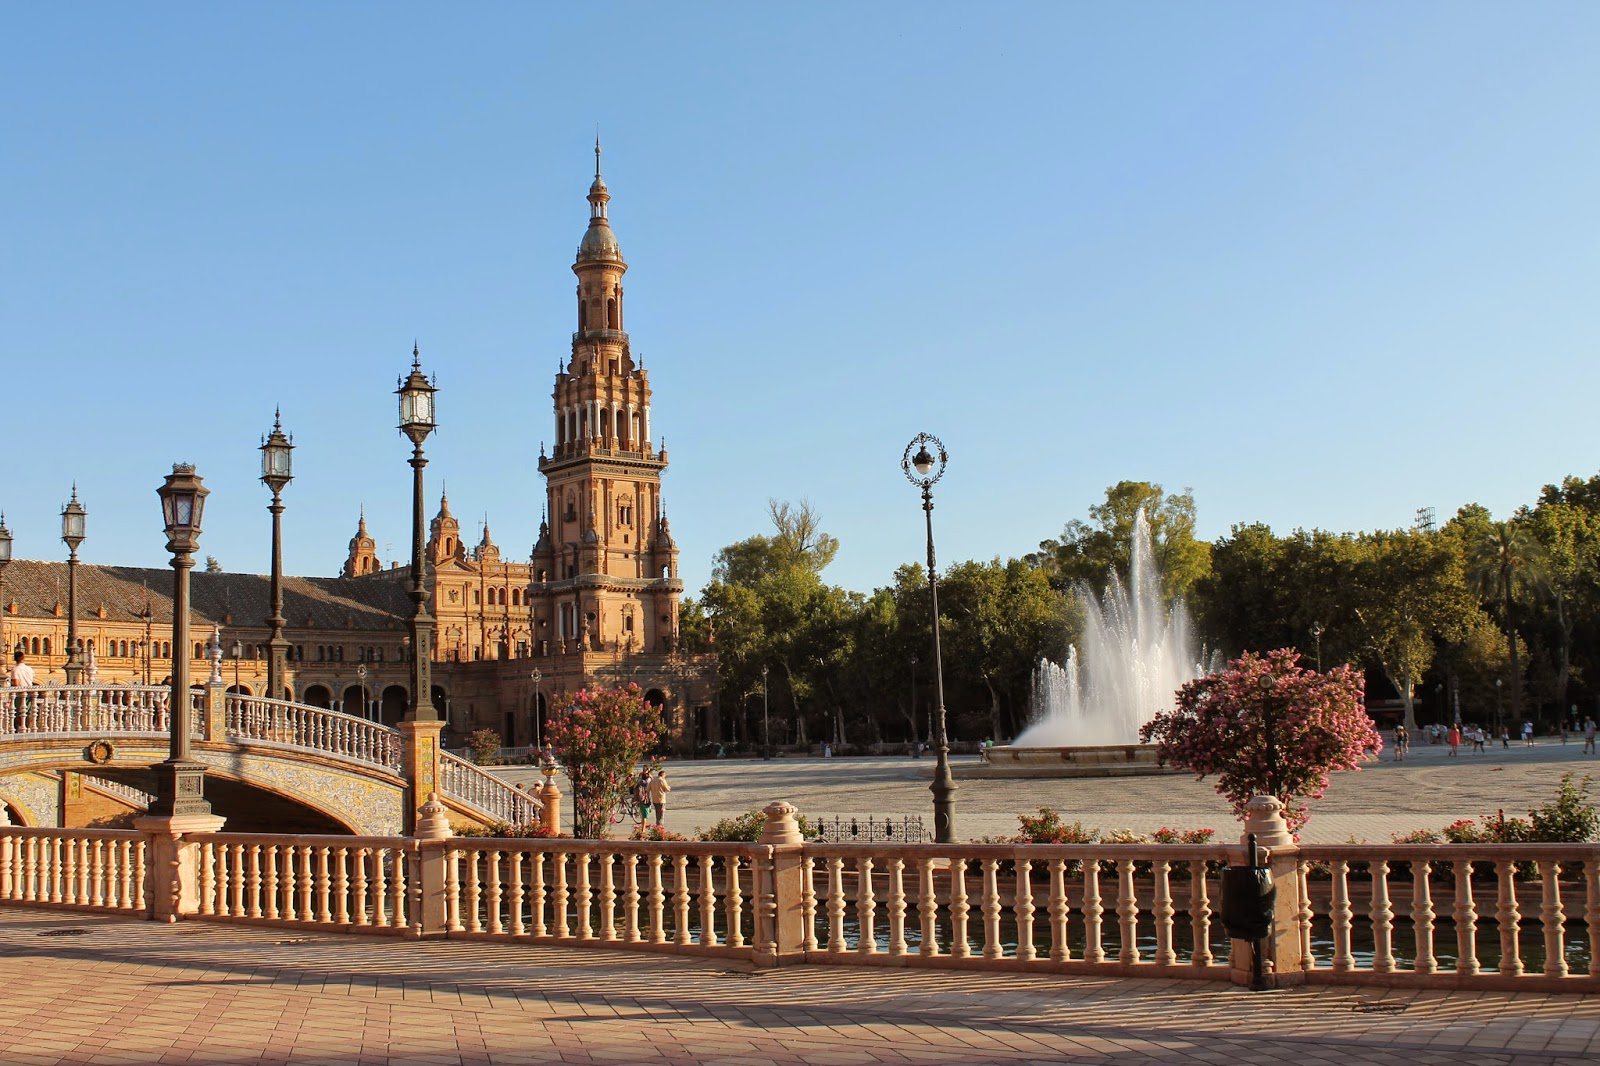 The Plaza de España